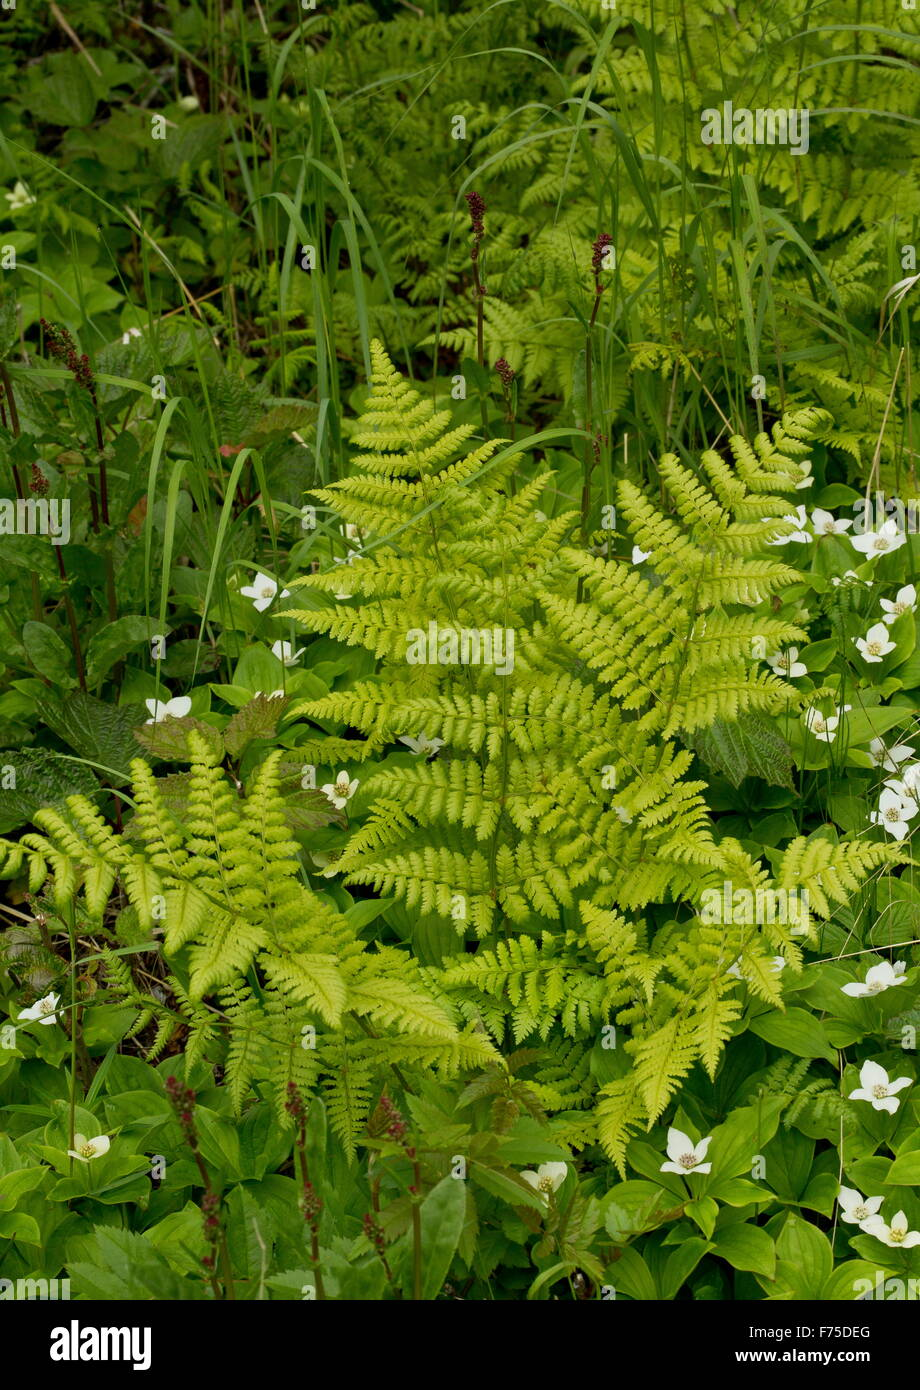 Mountain Woodfern, Spreading Shieldfern, Dryopteris campyloptera - Stock Image